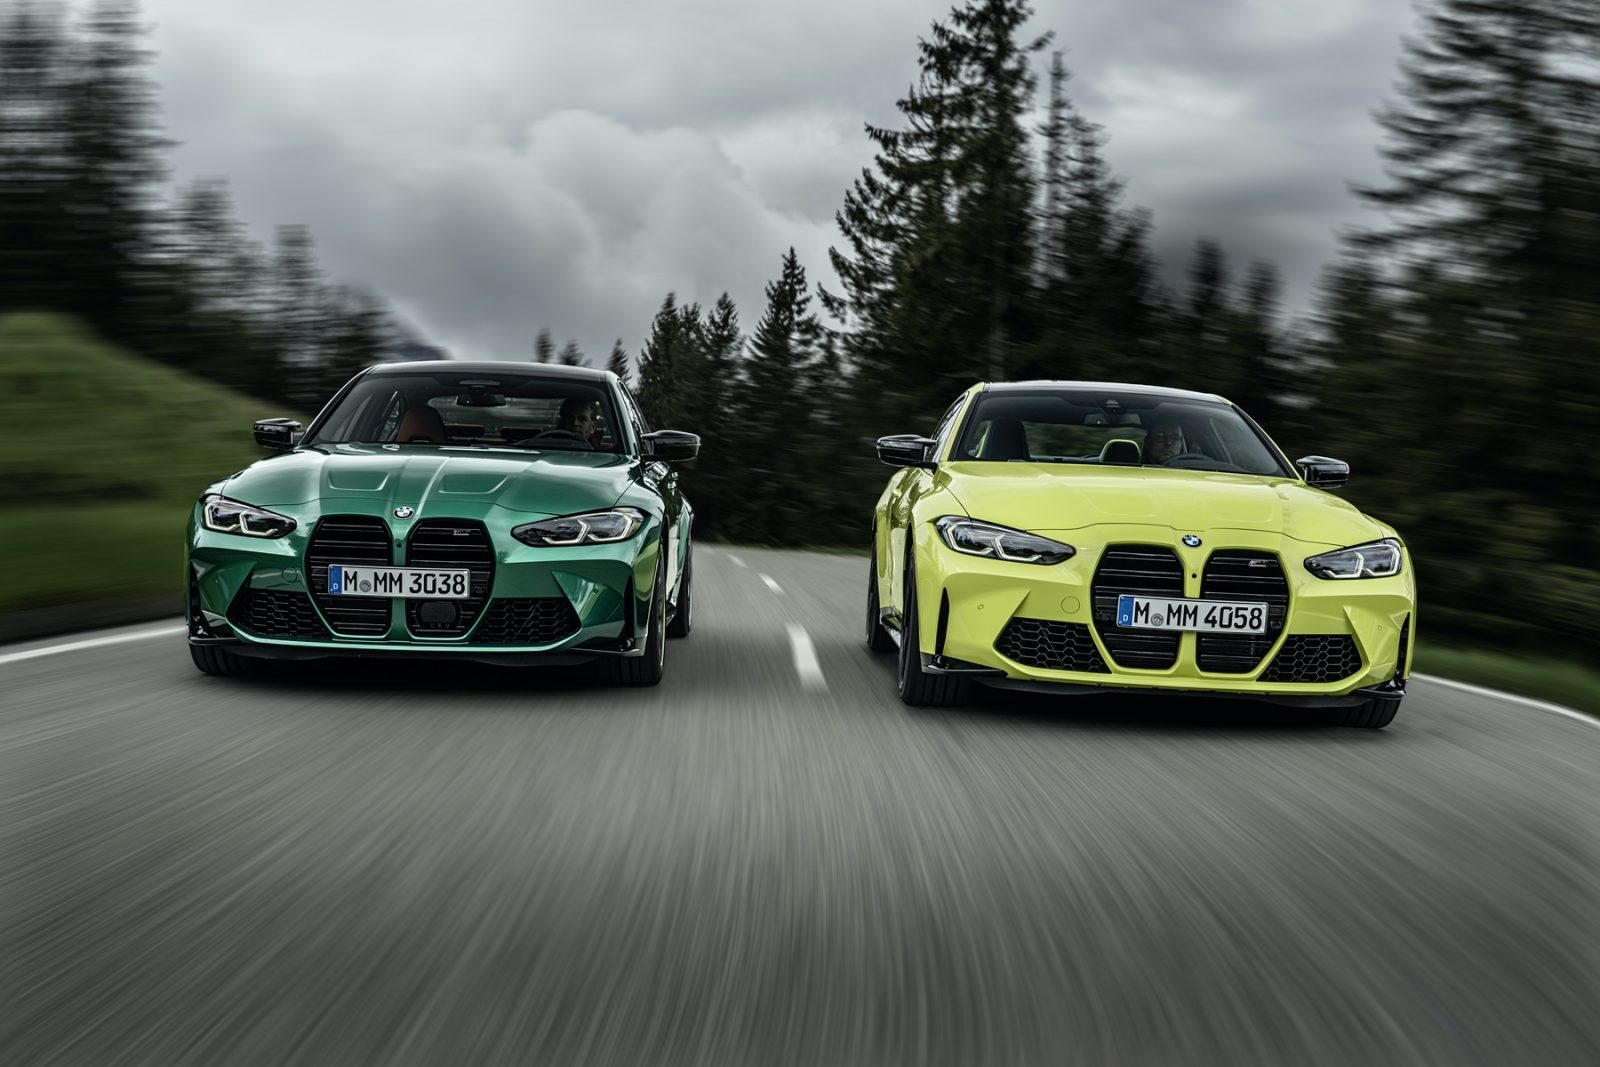 new BMW M3 and BMW M4